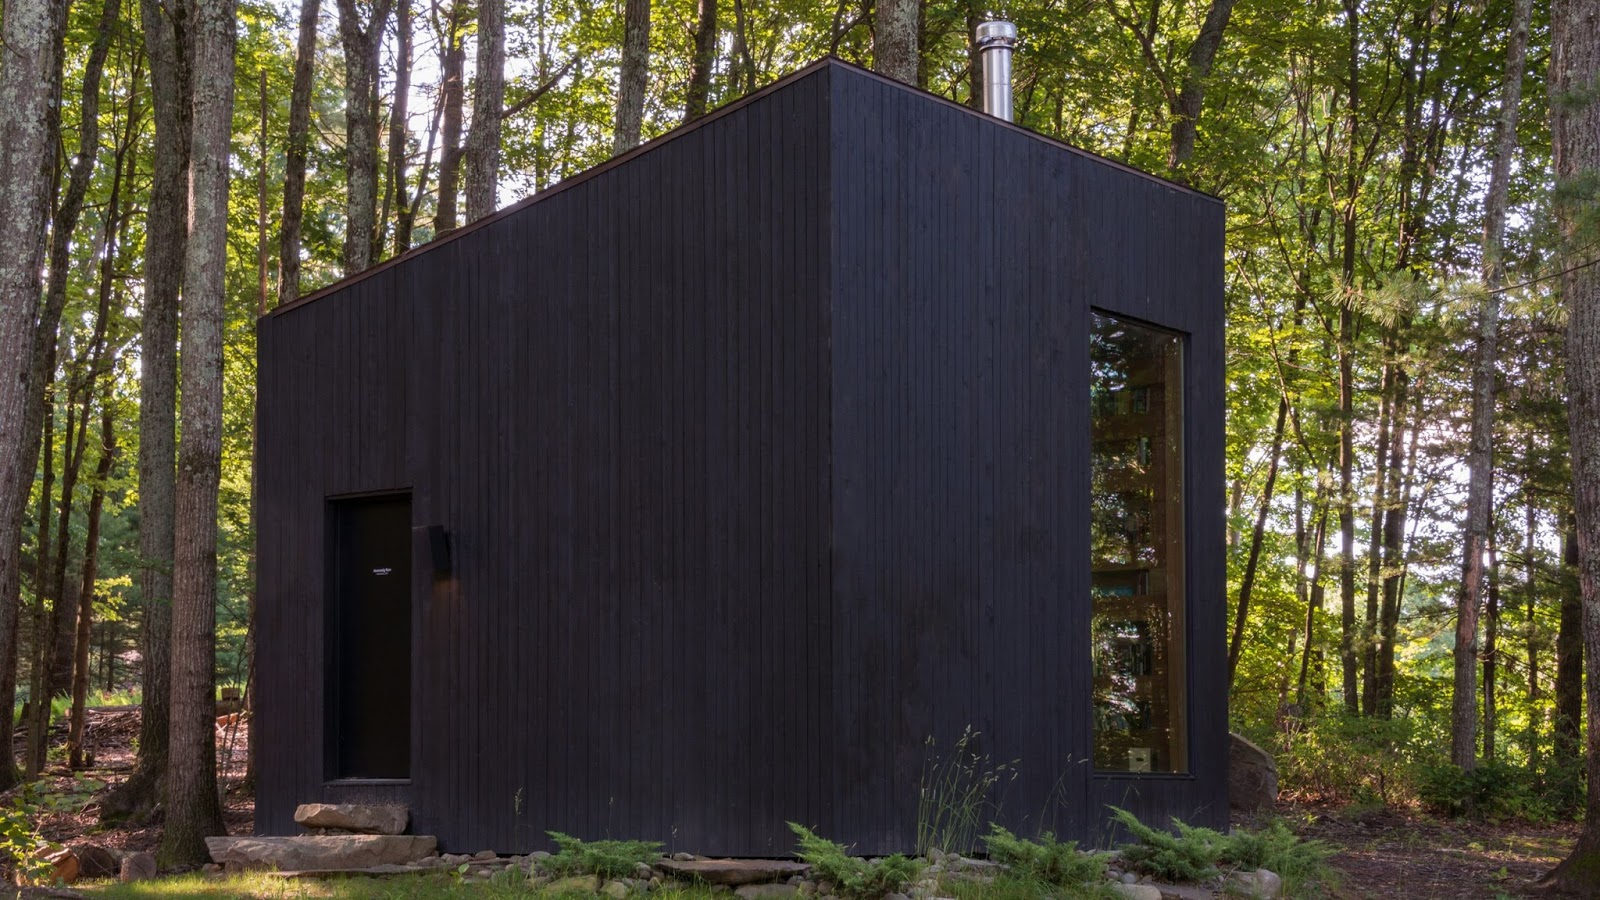 Tiny house town upstate new york library cabin 320 sq ft for Upstate new york cabin